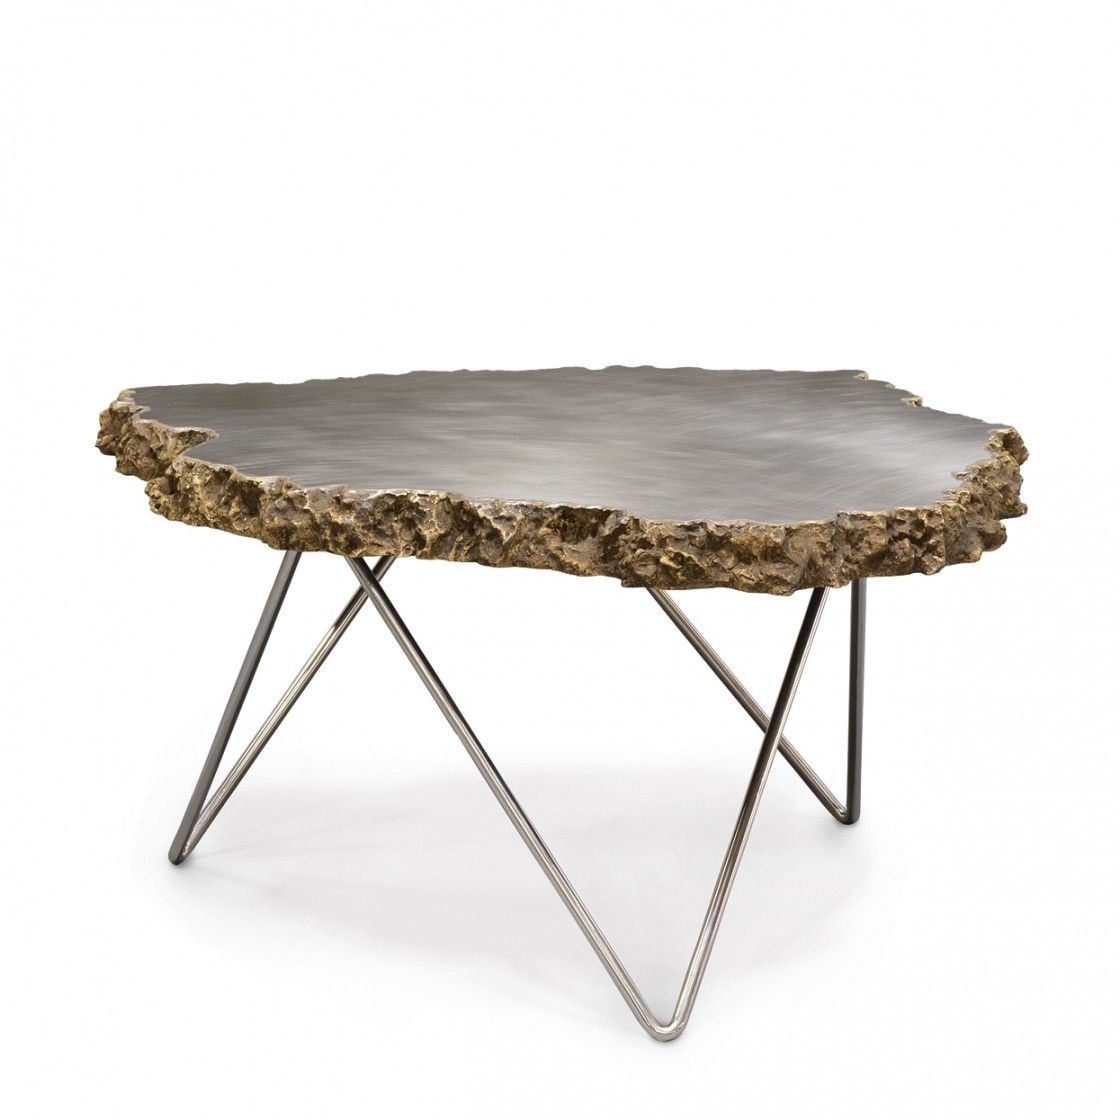 Artistic Live Edge Natural Stone Coffee Table Prehistoric Inspired With Modern Steel Legs